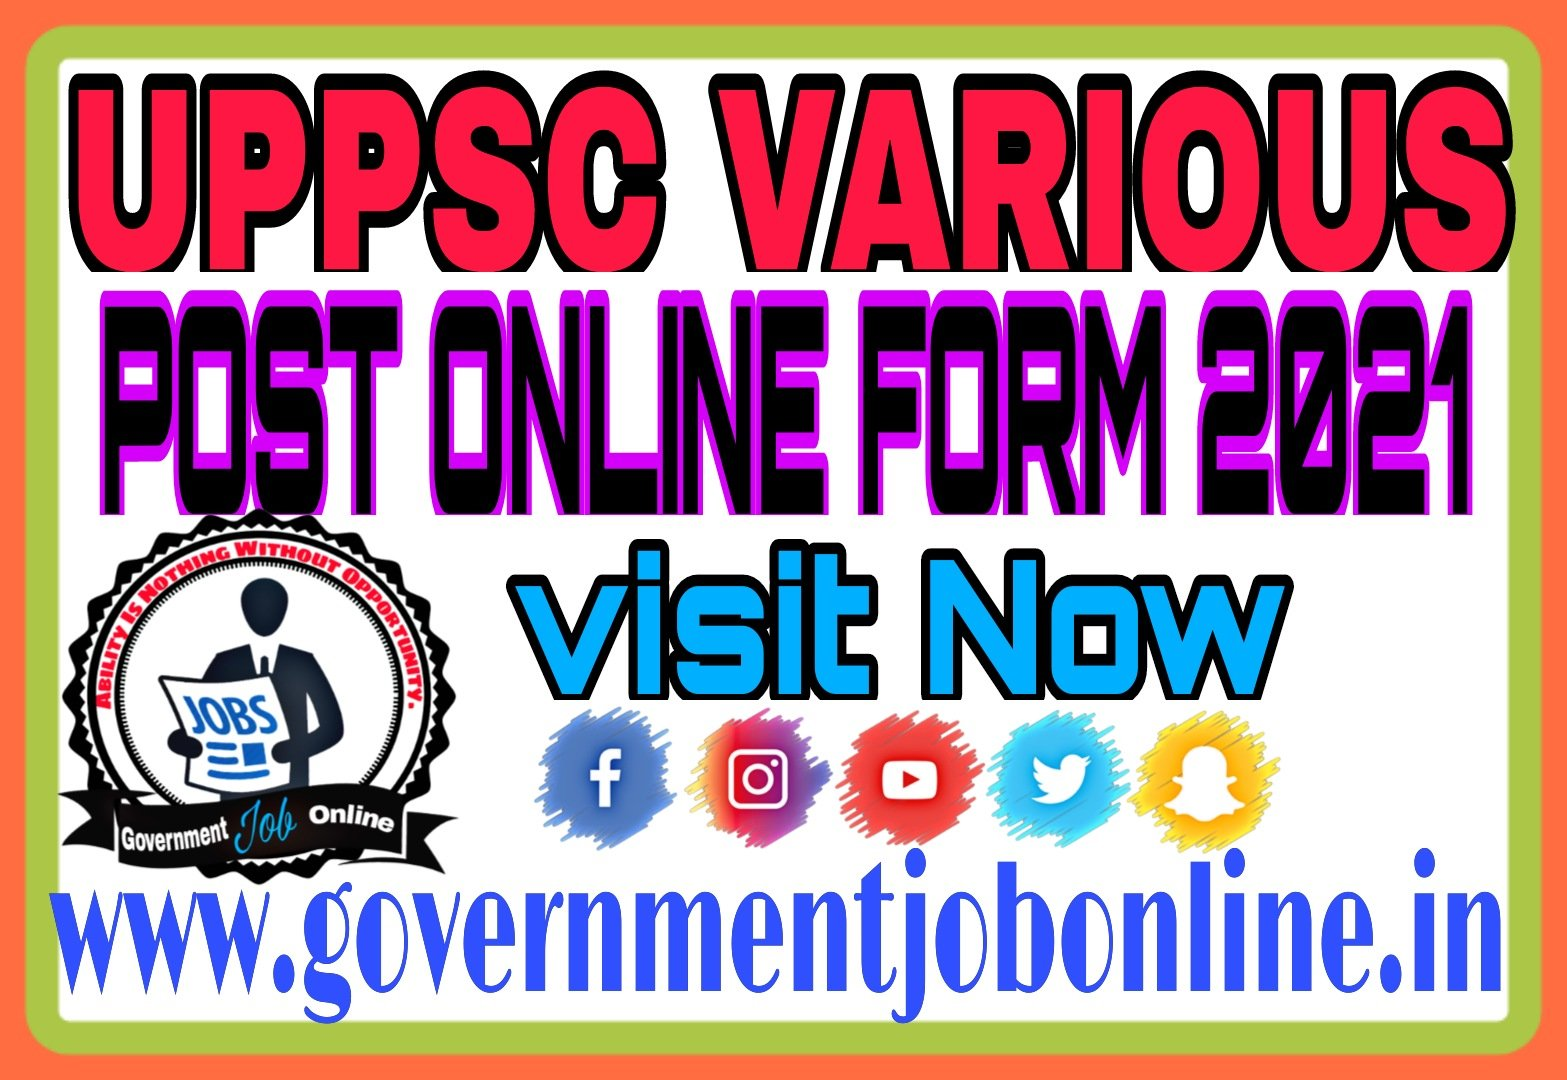 UPPSC Various Post Online Form 2021